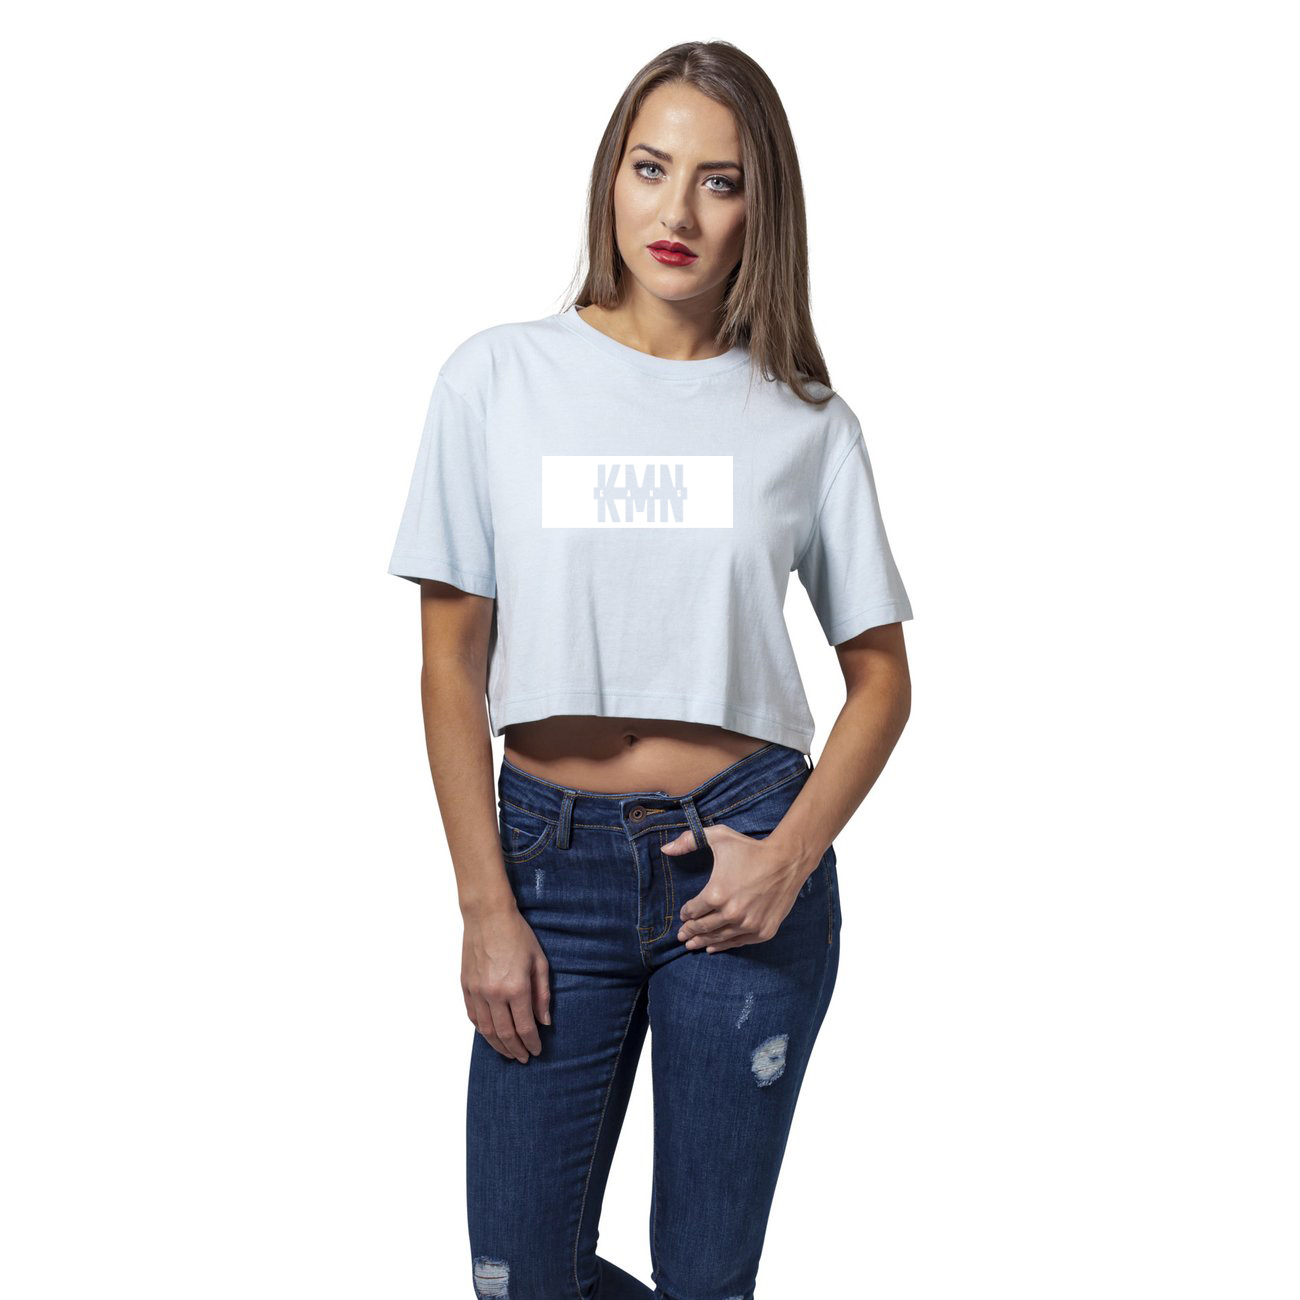 kmn gang ladies short t shirt hellblau 30 shop. Black Bedroom Furniture Sets. Home Design Ideas